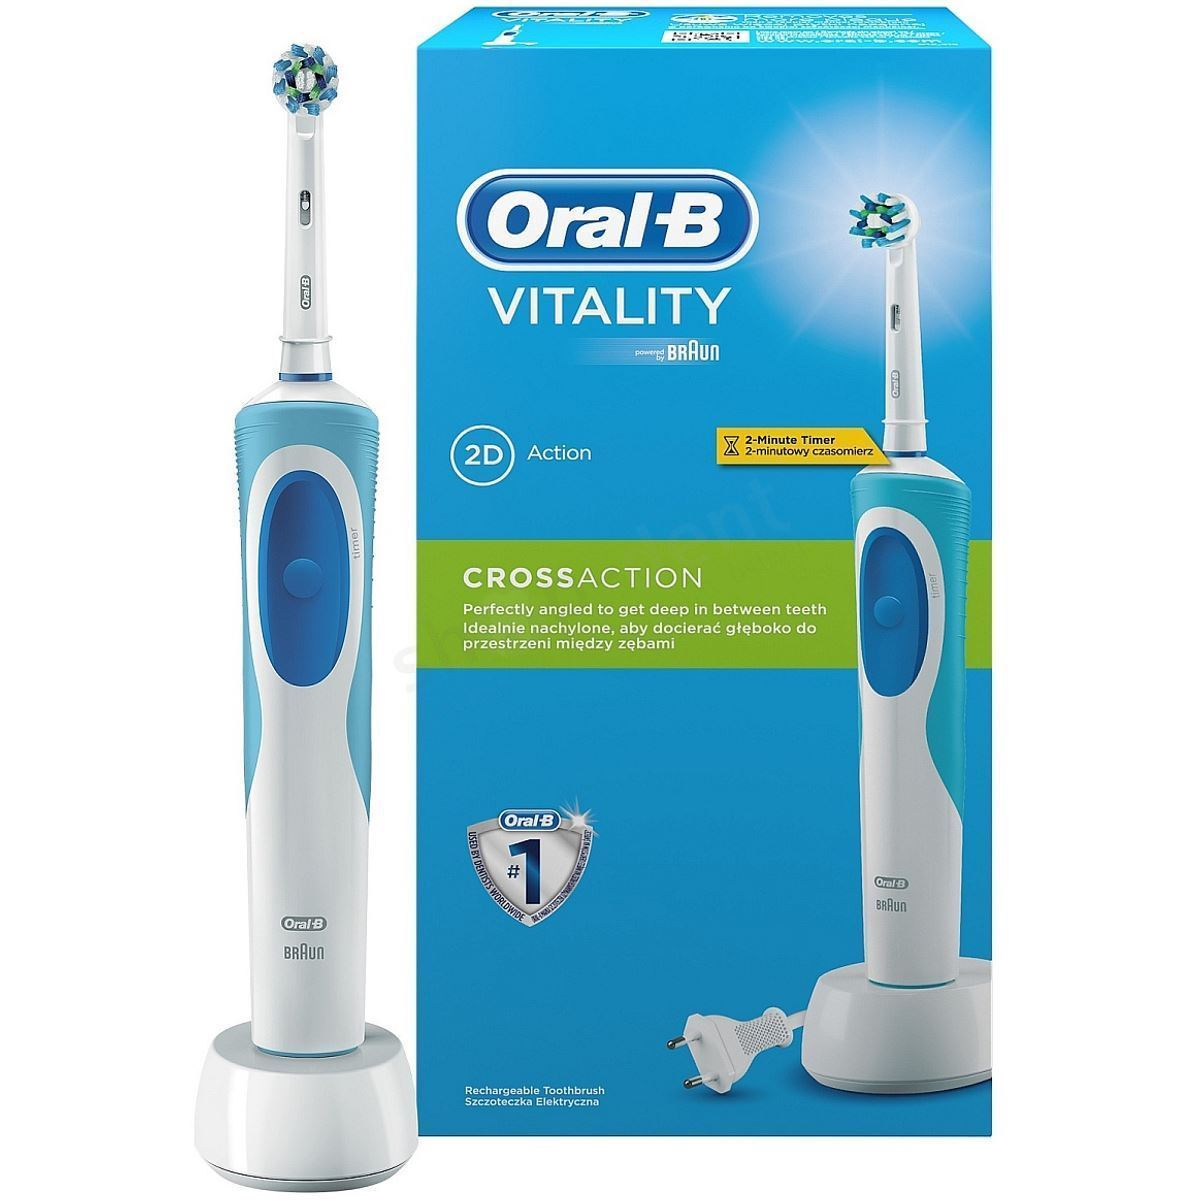 SPAZZOLINO ORAL-B RICARICABILE VITALITY CROSSACTION CON SUPPORTO